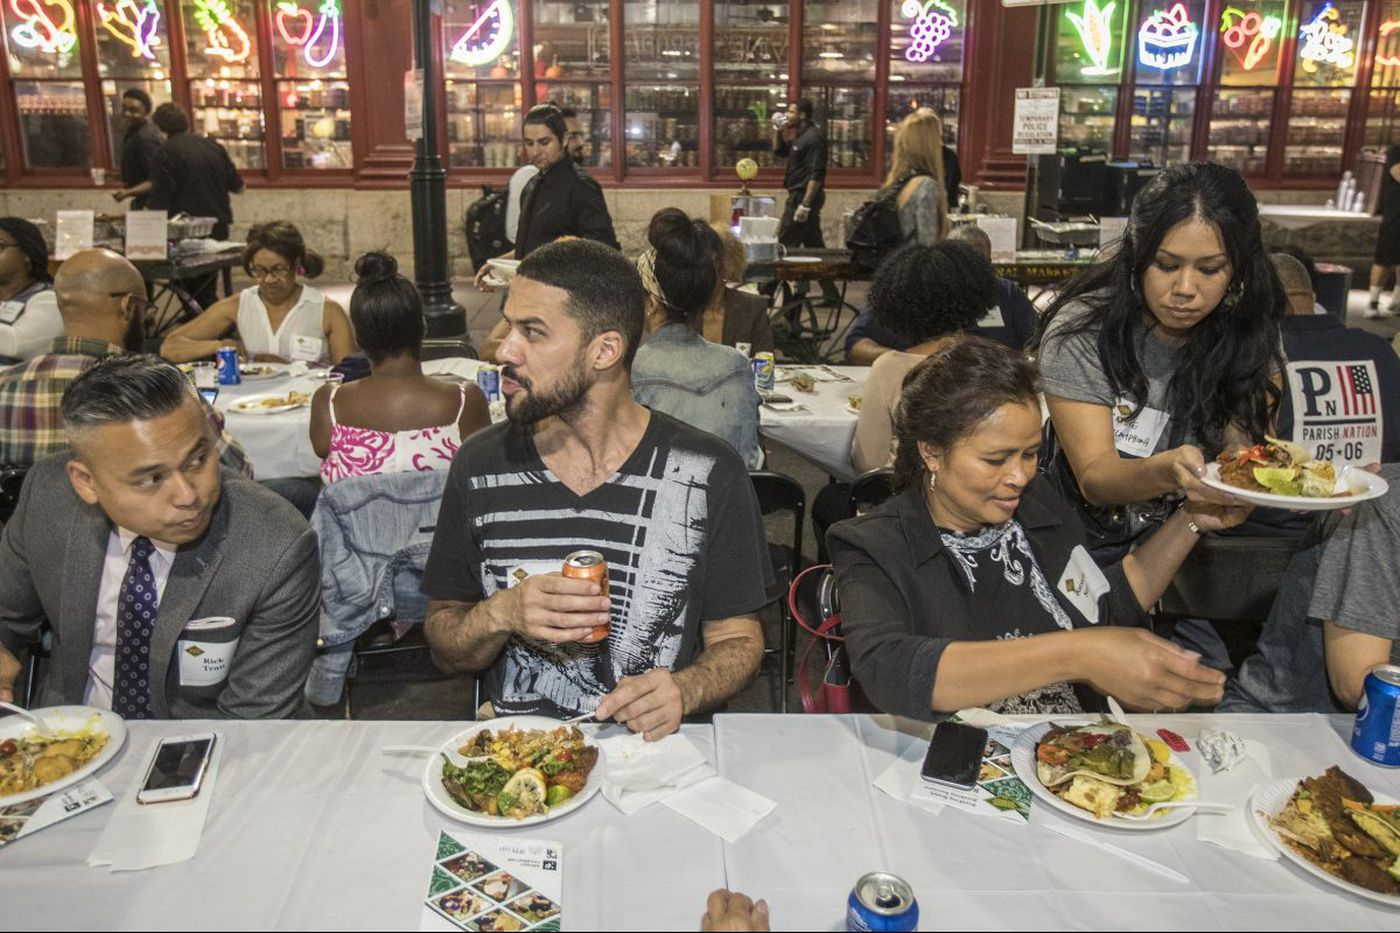 At Reading Terminal Market, cultures come together more than anywhere else in the city